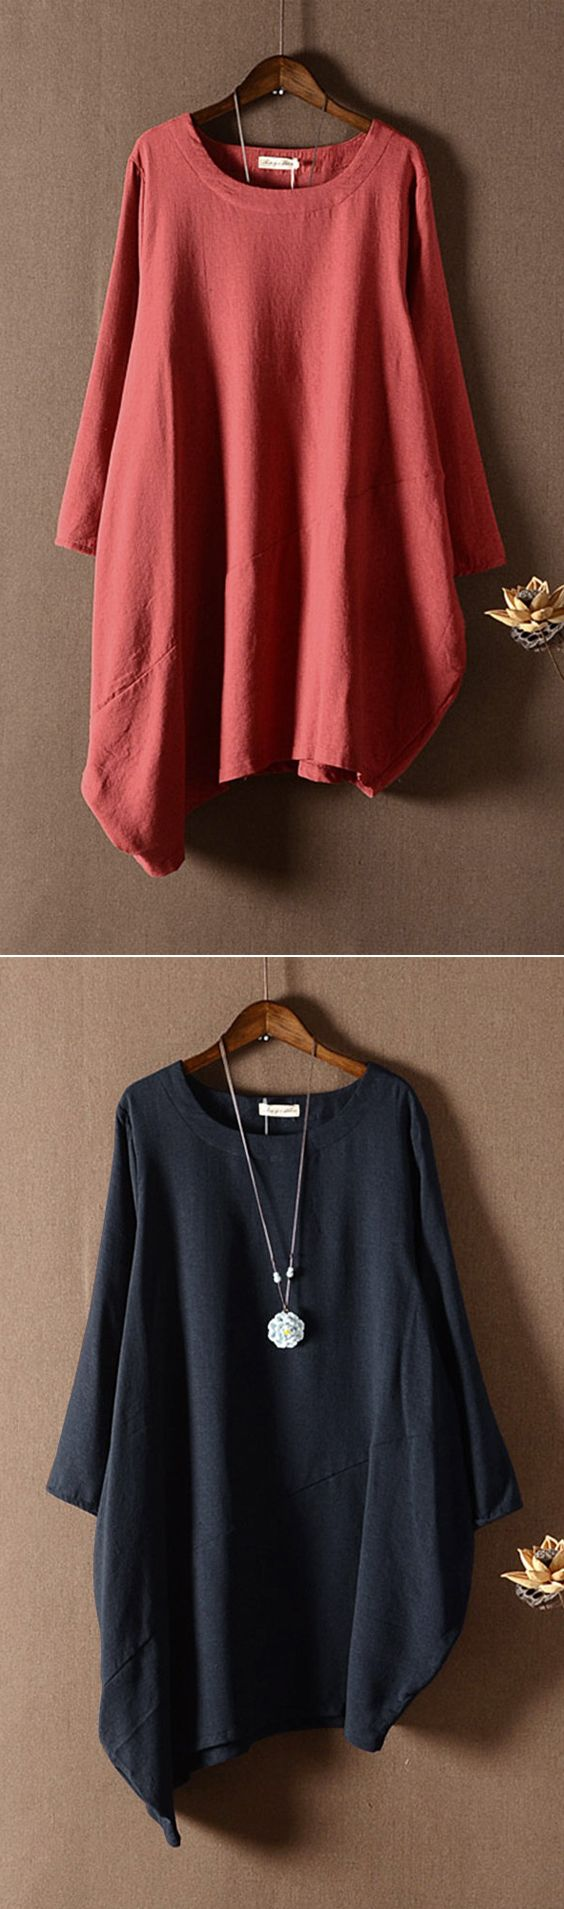 O-NEWE Casual Solid Long Sleeve Irregular Blouse For Women #fashion #style